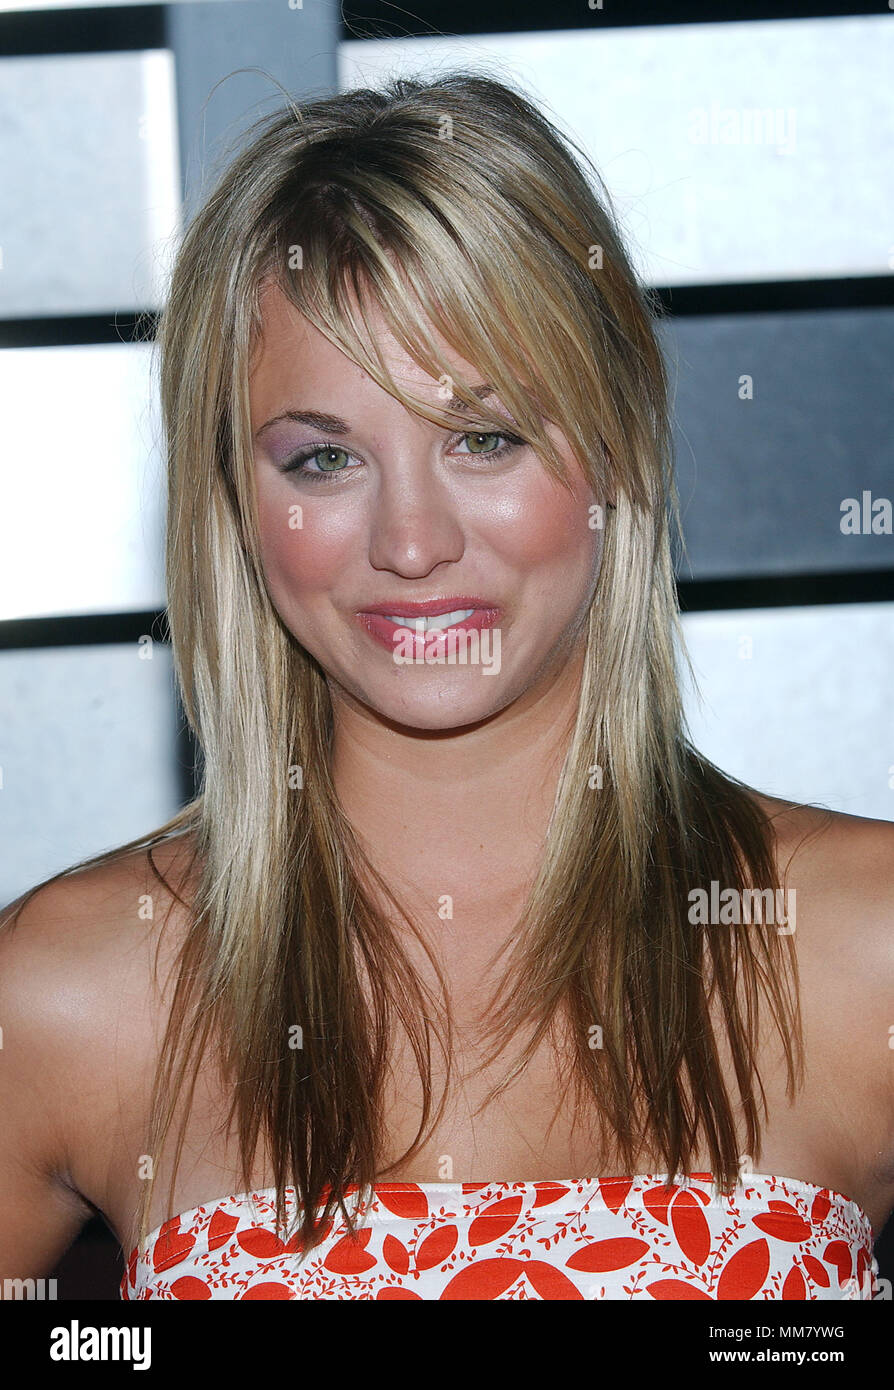 Kaley Cuoco 8 Simple Rules Arriving At The Abc All Star Party For